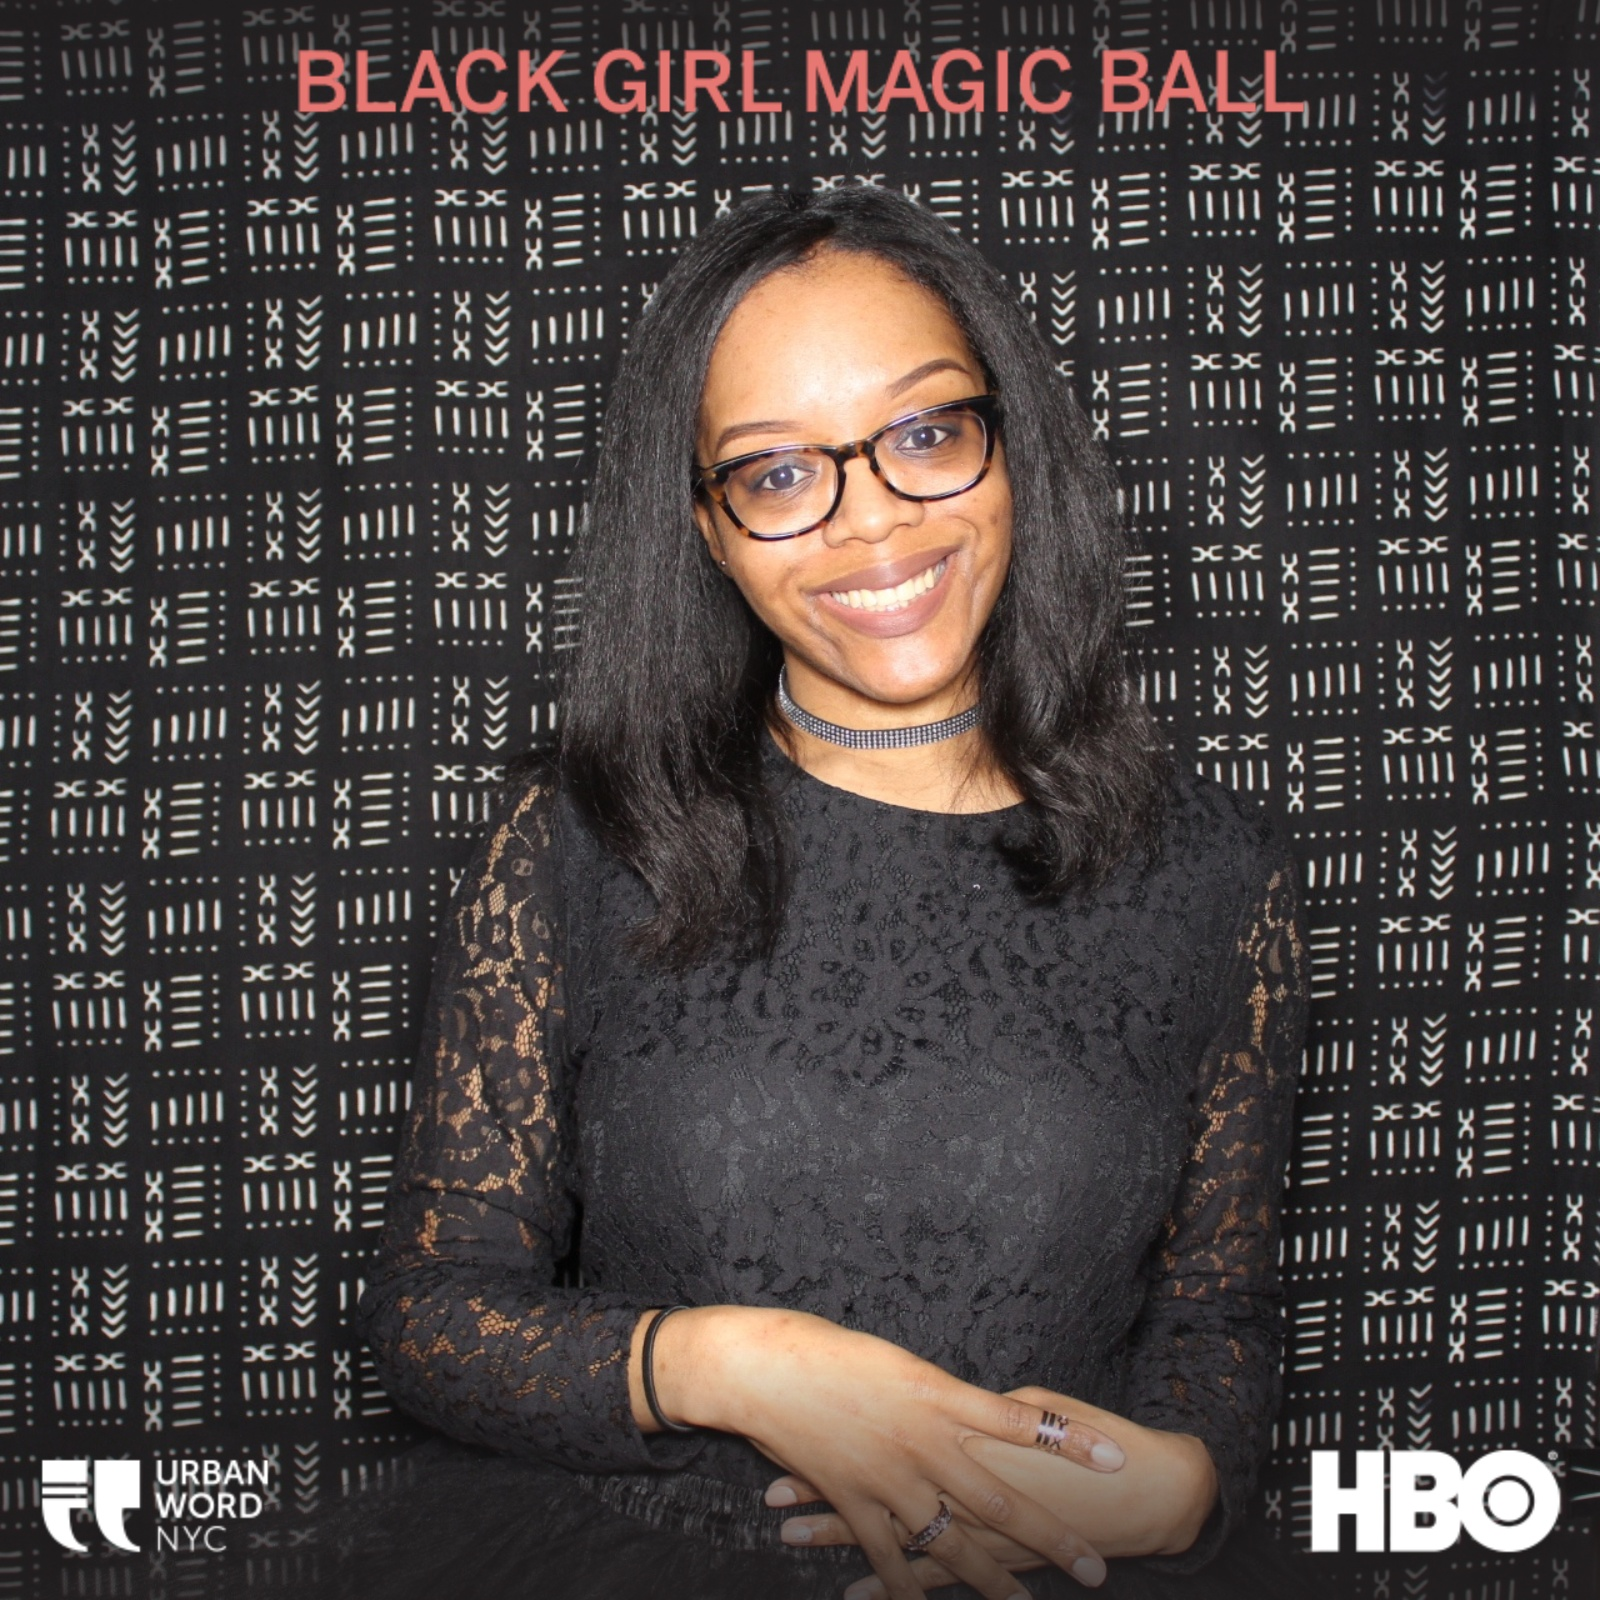 BLACK GIRL MAGIC BALL 2019